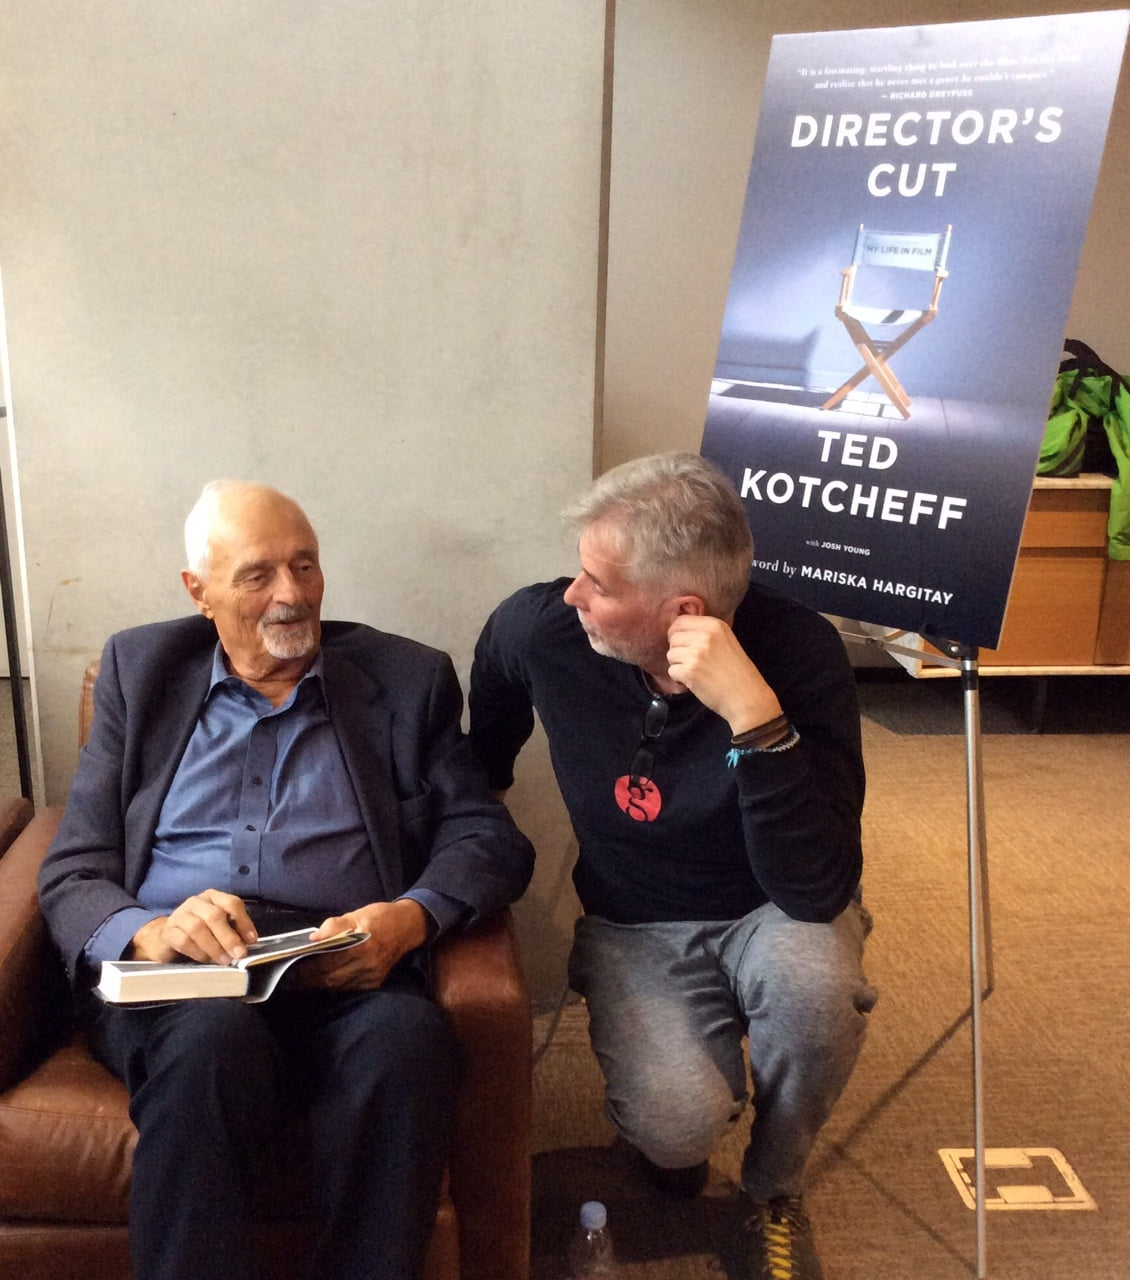 Christopher Heard and Ted Kotcheff